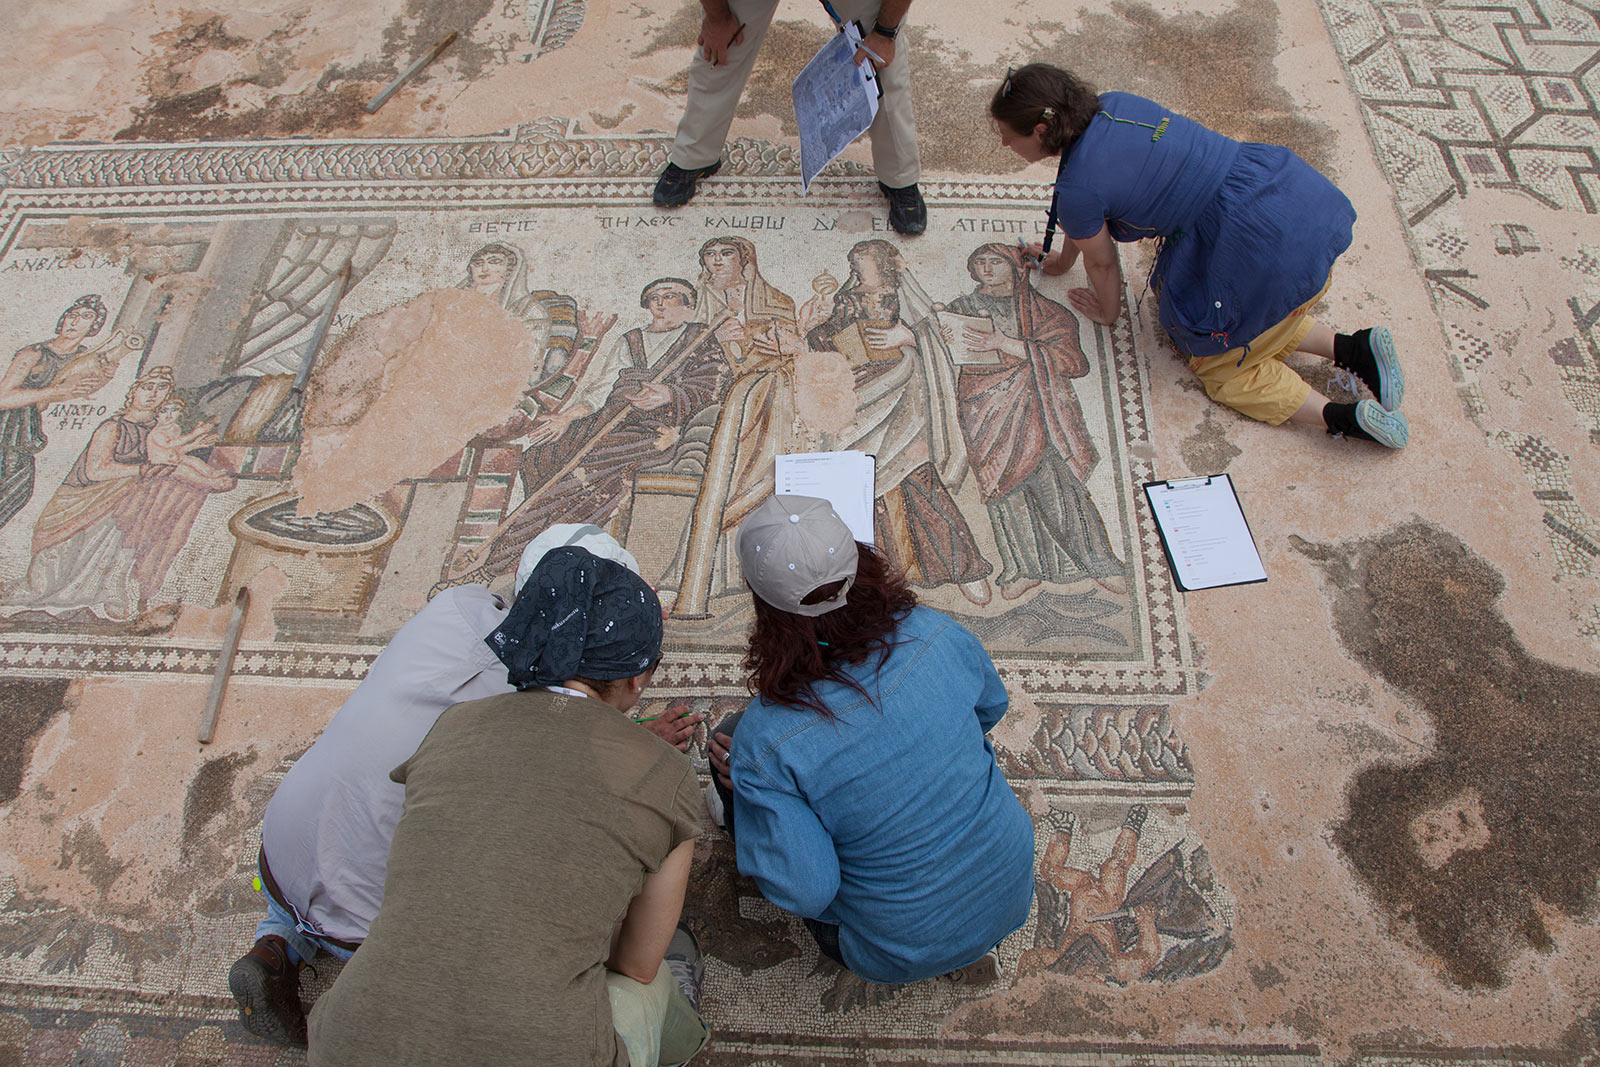 Overhead view of a small group of people down on their knees, closely assessing an ancient mosaic pavement